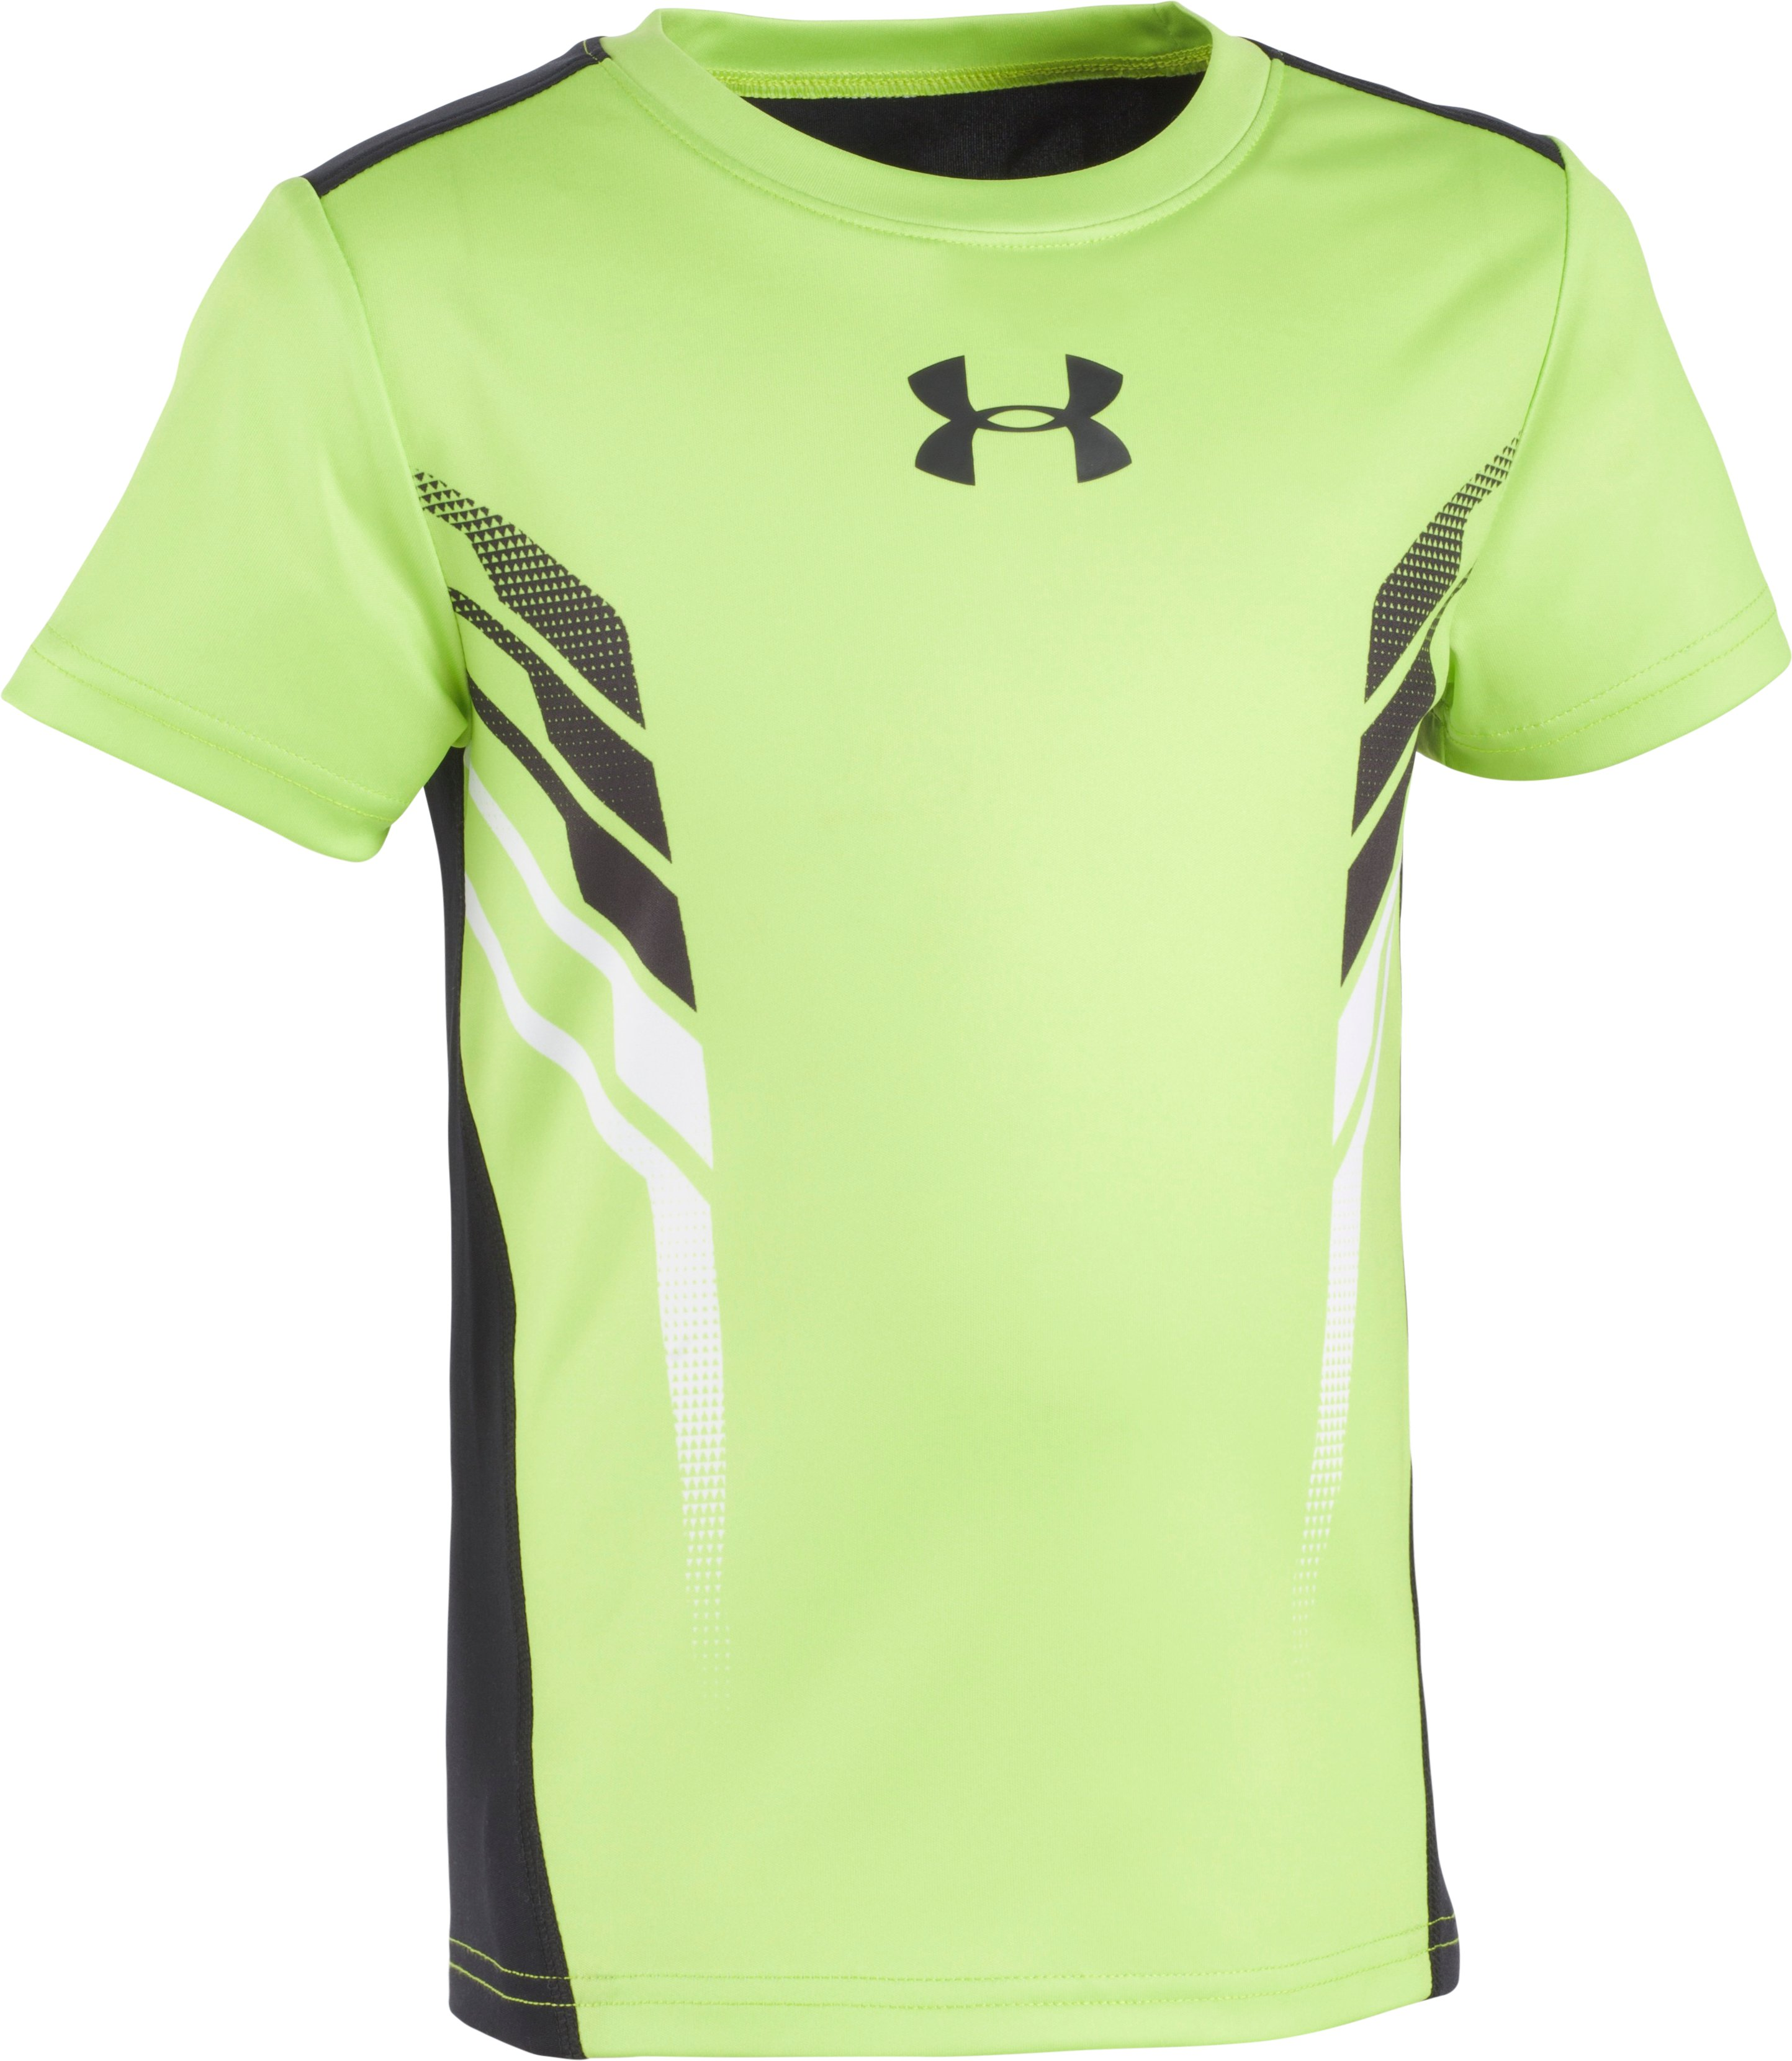 Boys' Toddler UA Select Short Sleeve T-Shirt, FUEL GREEN